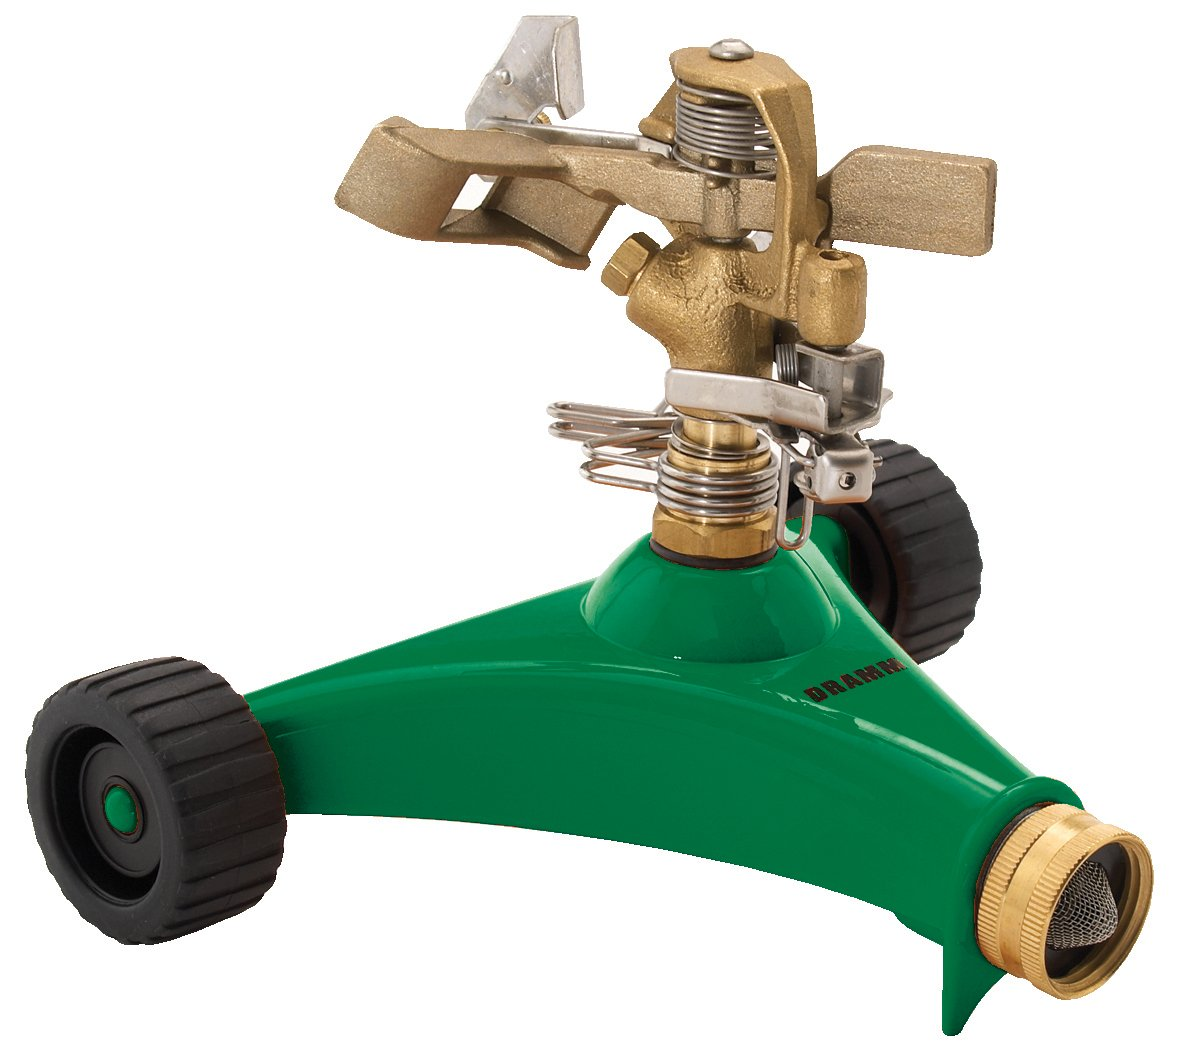 Dramm 15034 Colorstorm Premium Impulse Sprinkler with Heavy-Duty Metal Wheeled Base, Green